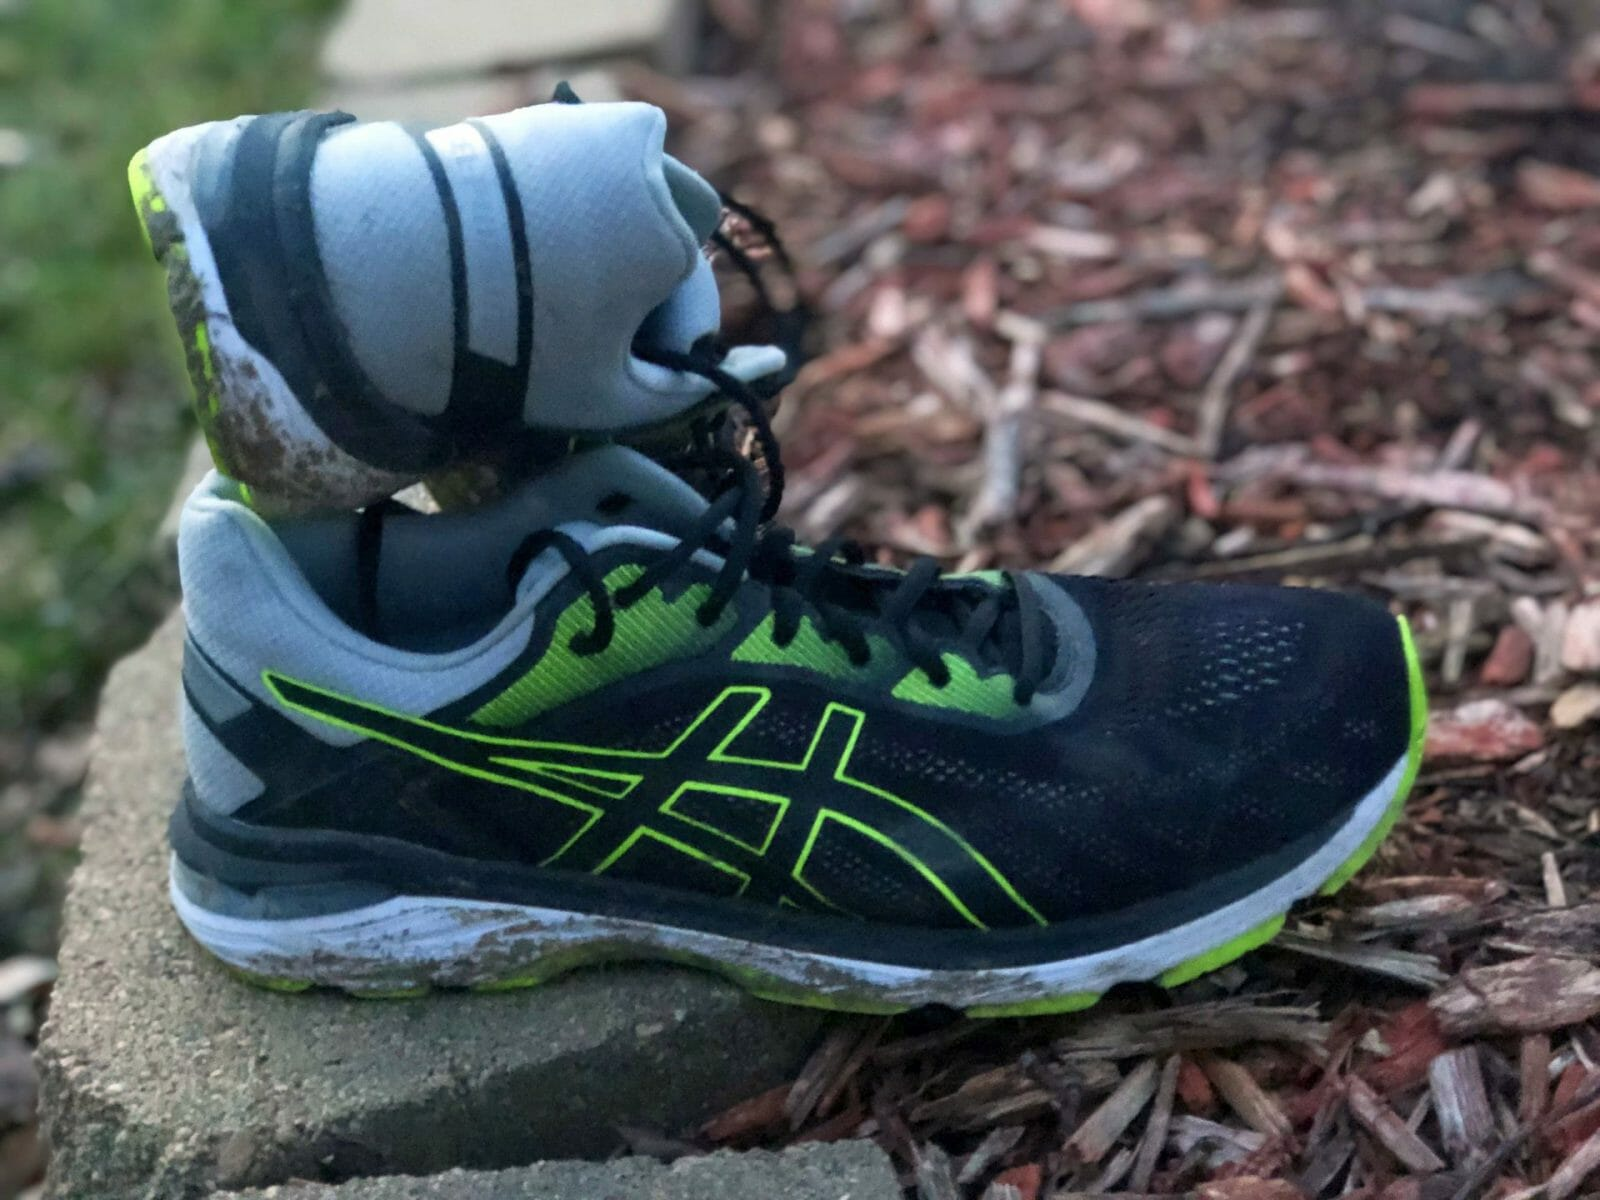 Asics Gel Pursue 5 - 06